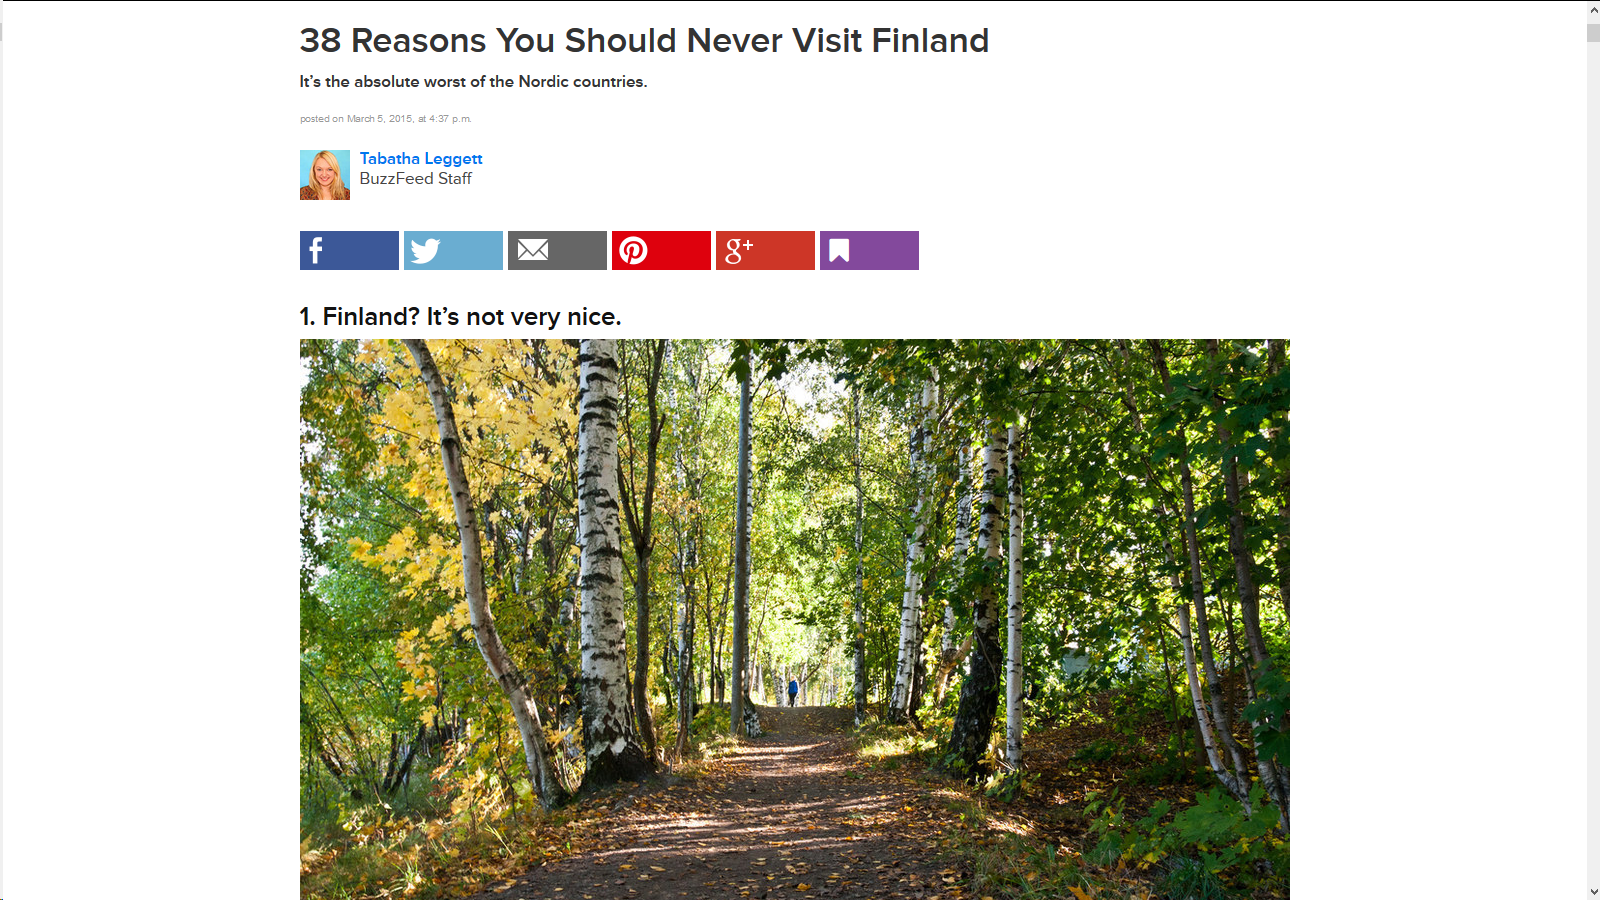 http://www.buzzfeed.com/tabathaleggett/reasons-you-should-never-visit-finland